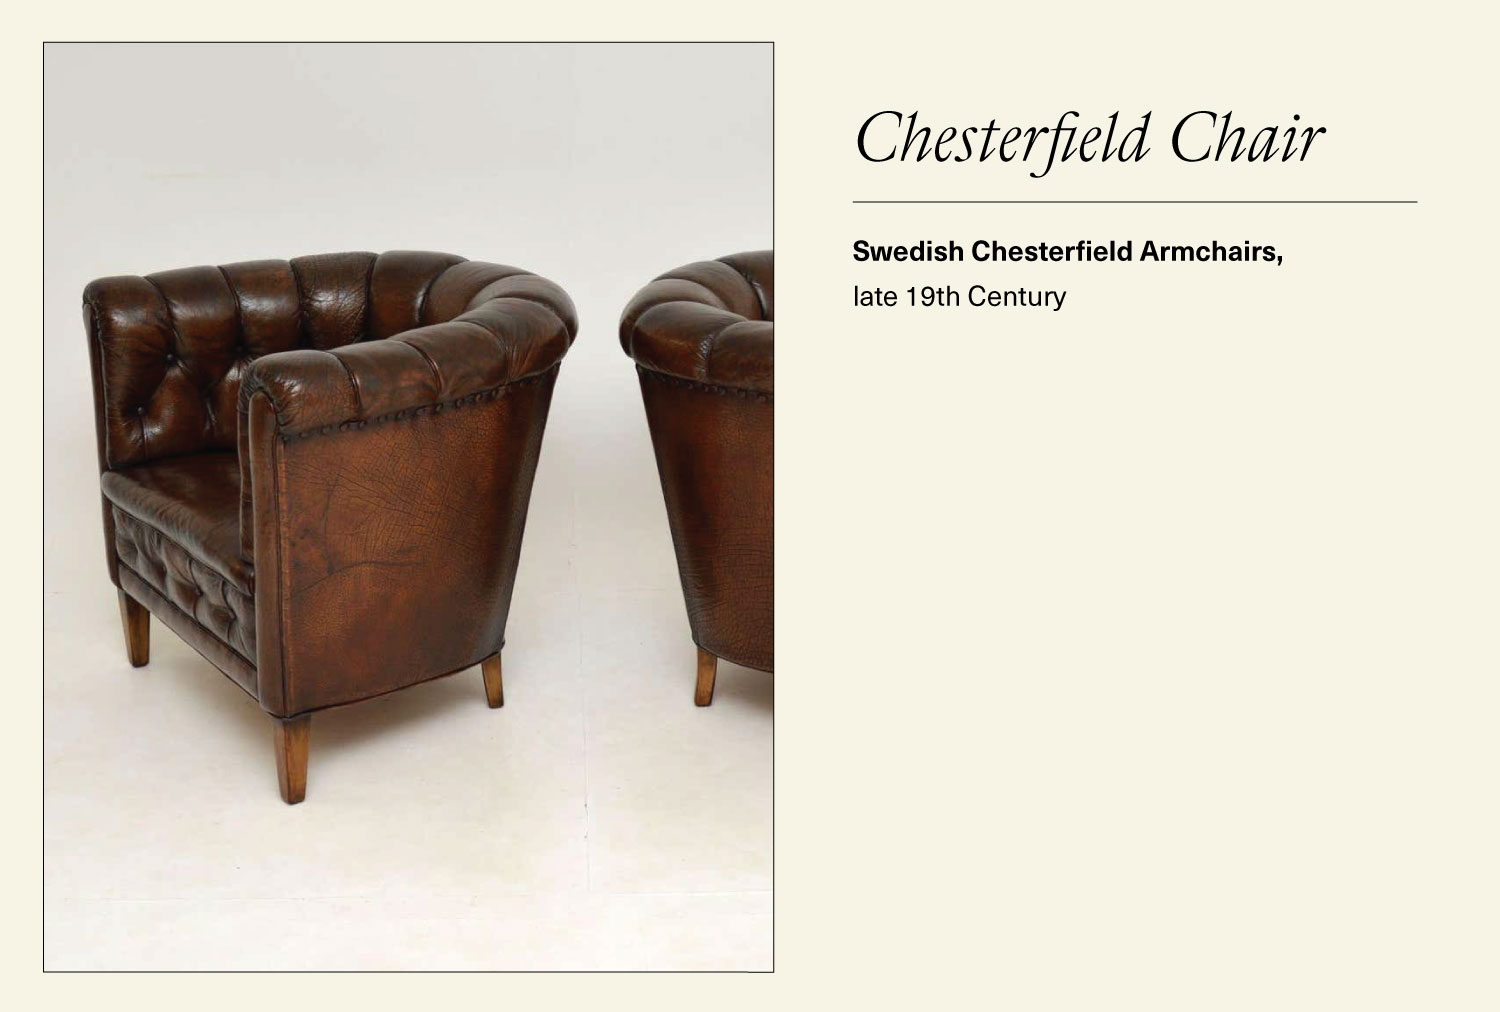 Pair of leather Swedish Chesterfield armchairs